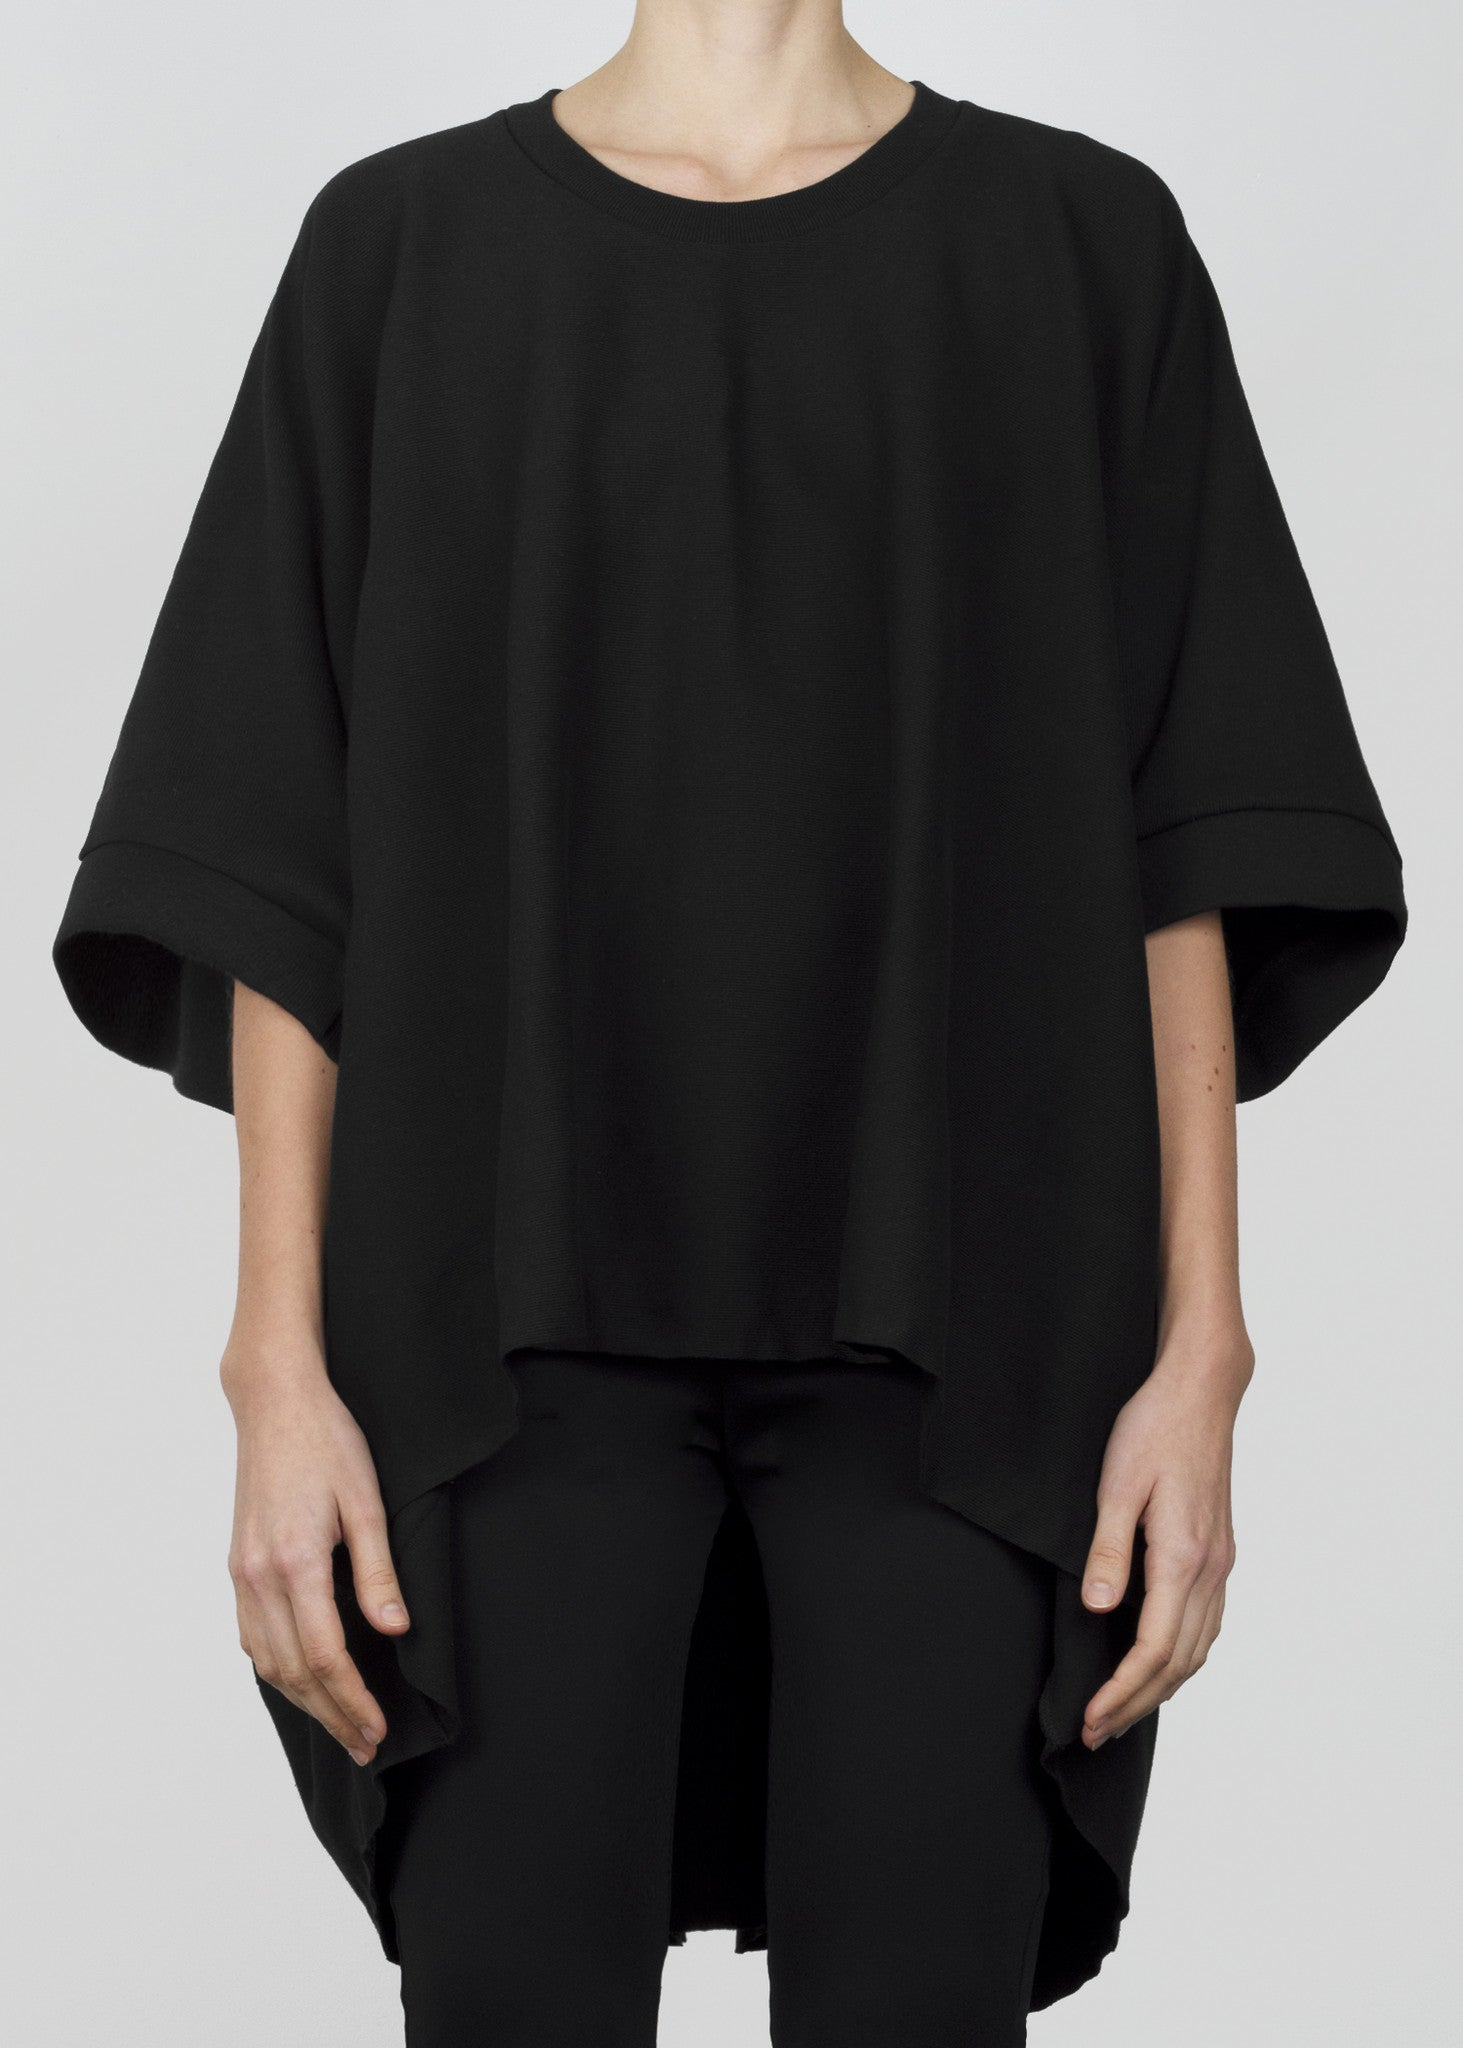 complexgeometries | AMPLE SWEATSHIRT